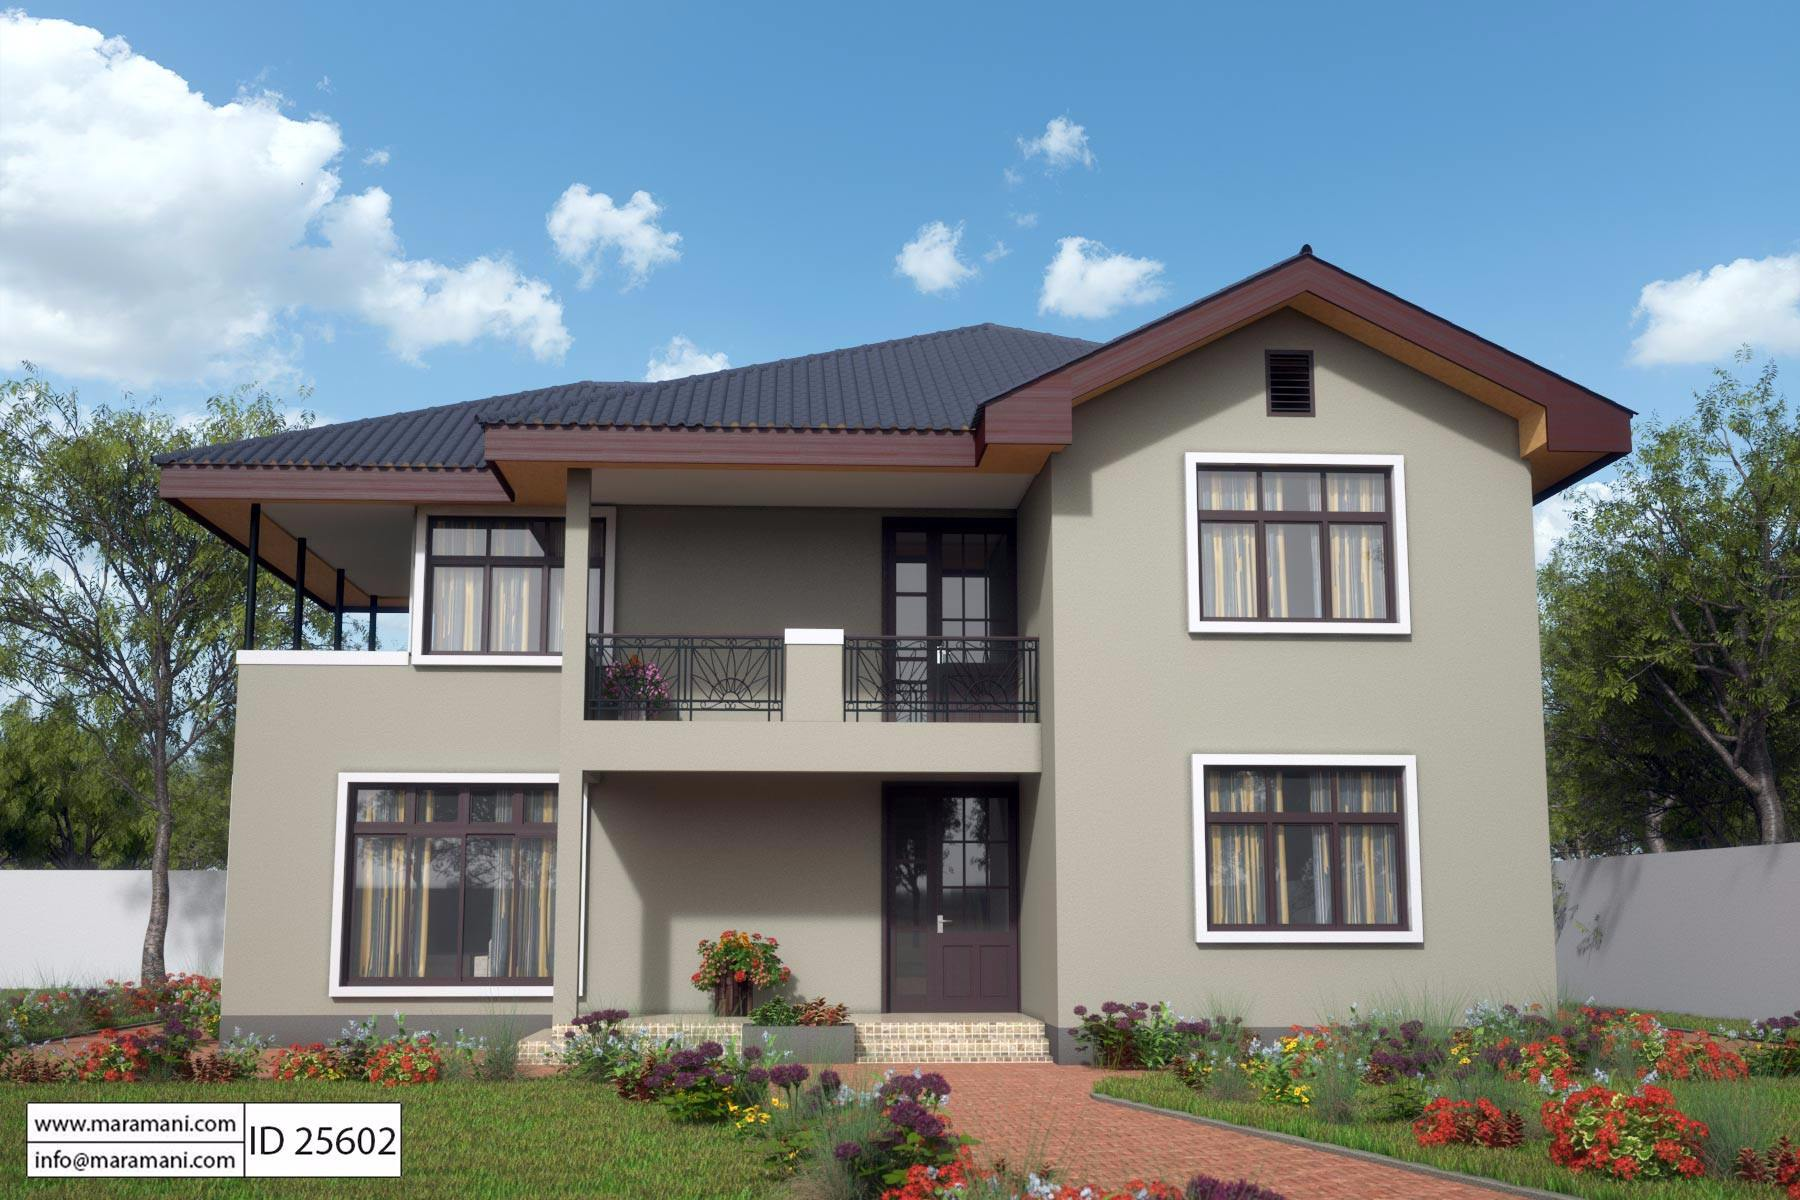 5 bedroom house design id 25602 house plans by maramani for Floor plans 5 bedroom house